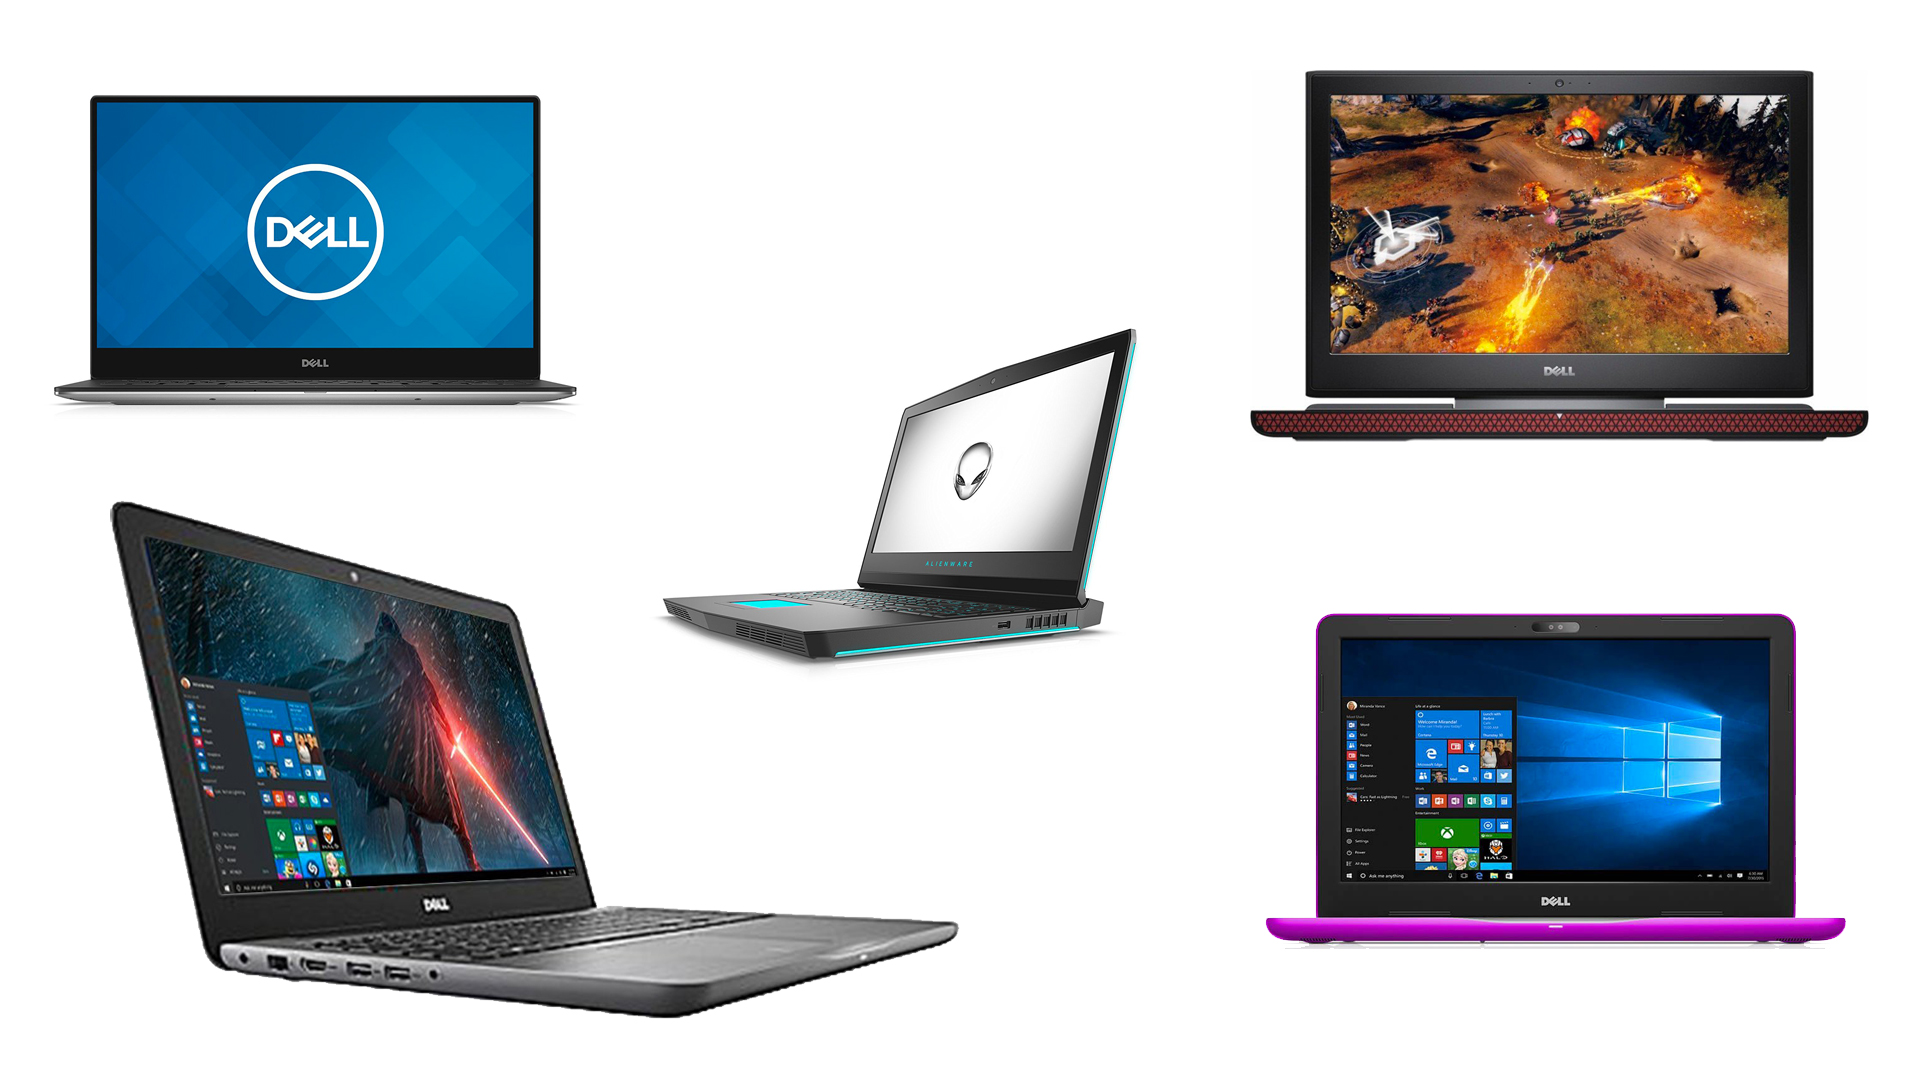 Top 10 Best Dell Laptops 2017: Compare, Buy & Save | Heavy.com